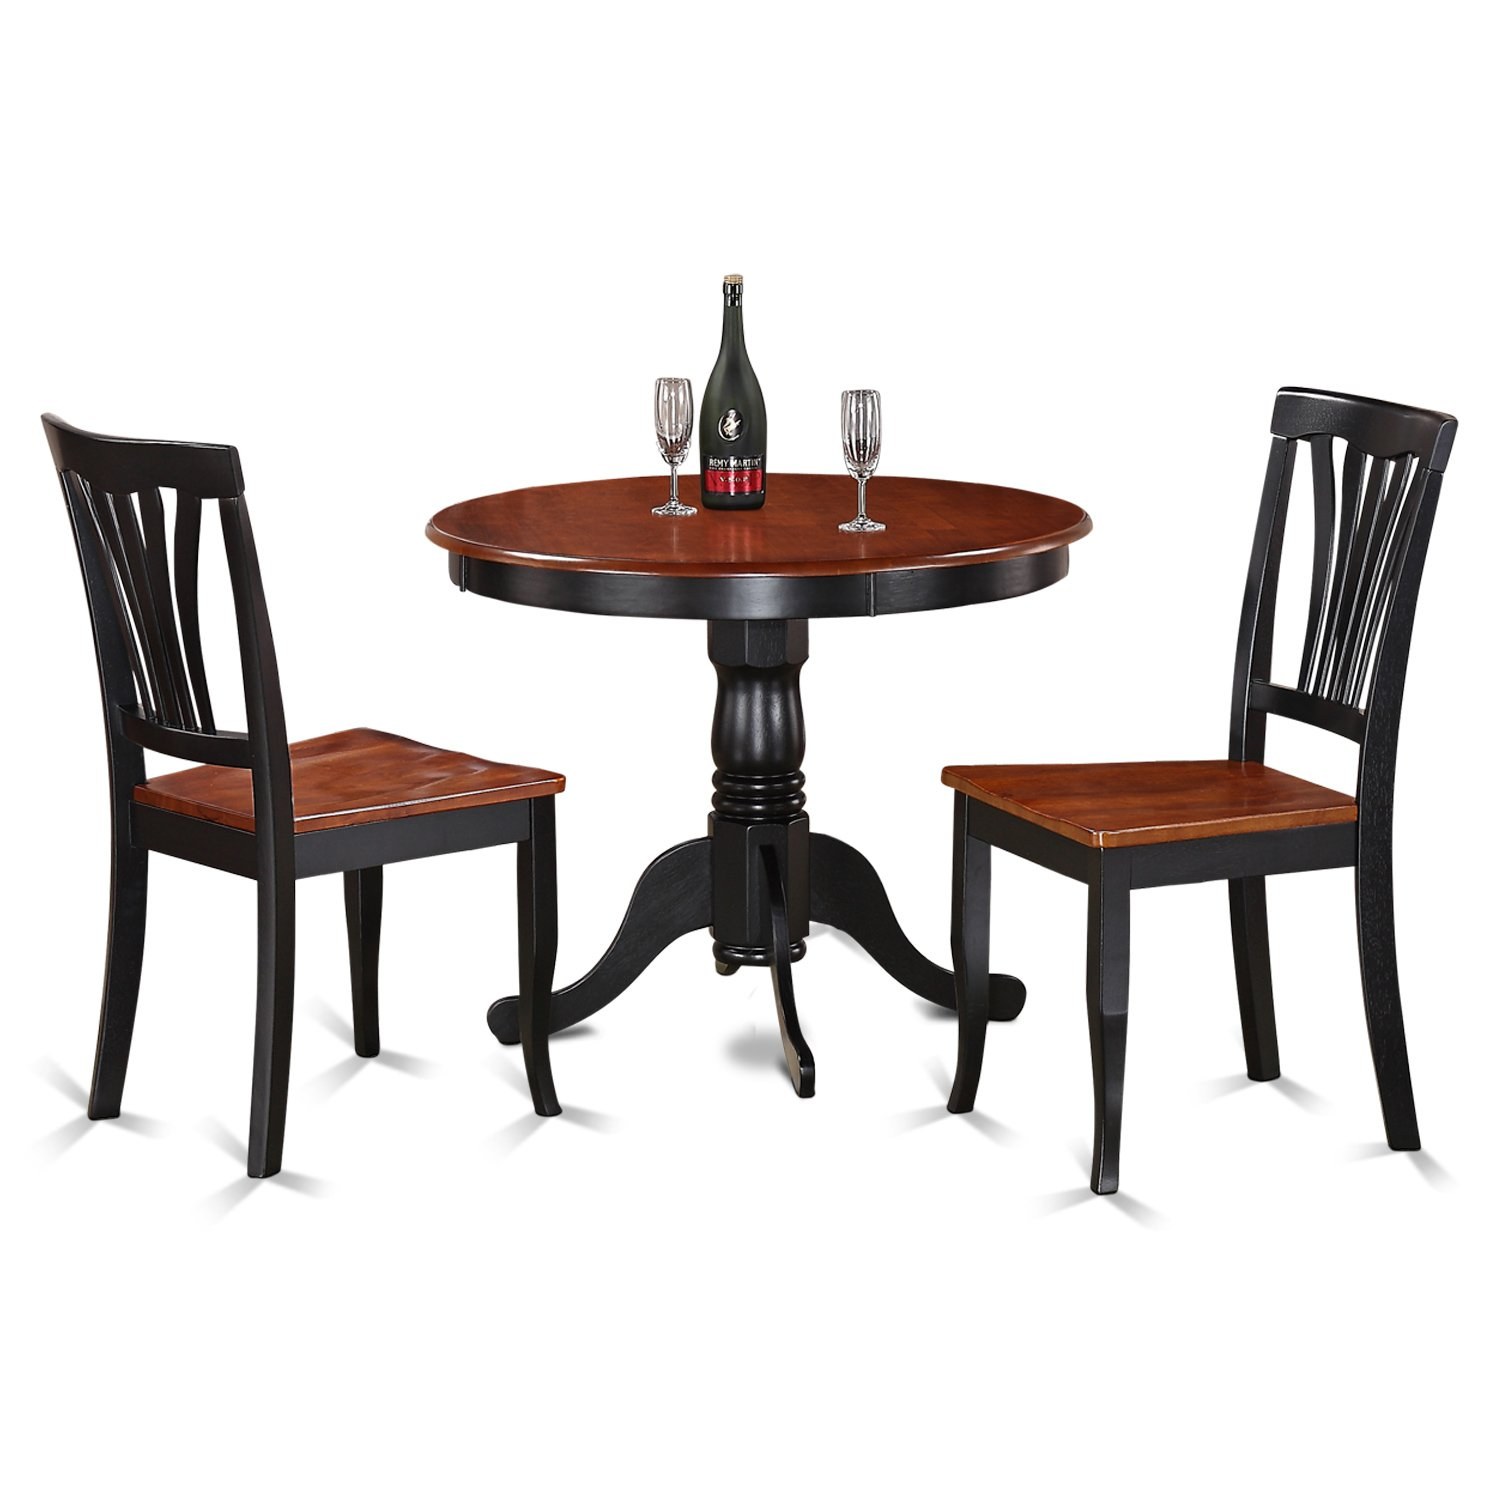 East West Furniture ANAV3-BLK-W 3-Piece Kitchen Nook Dining Table Set, Black/Cherry Finish